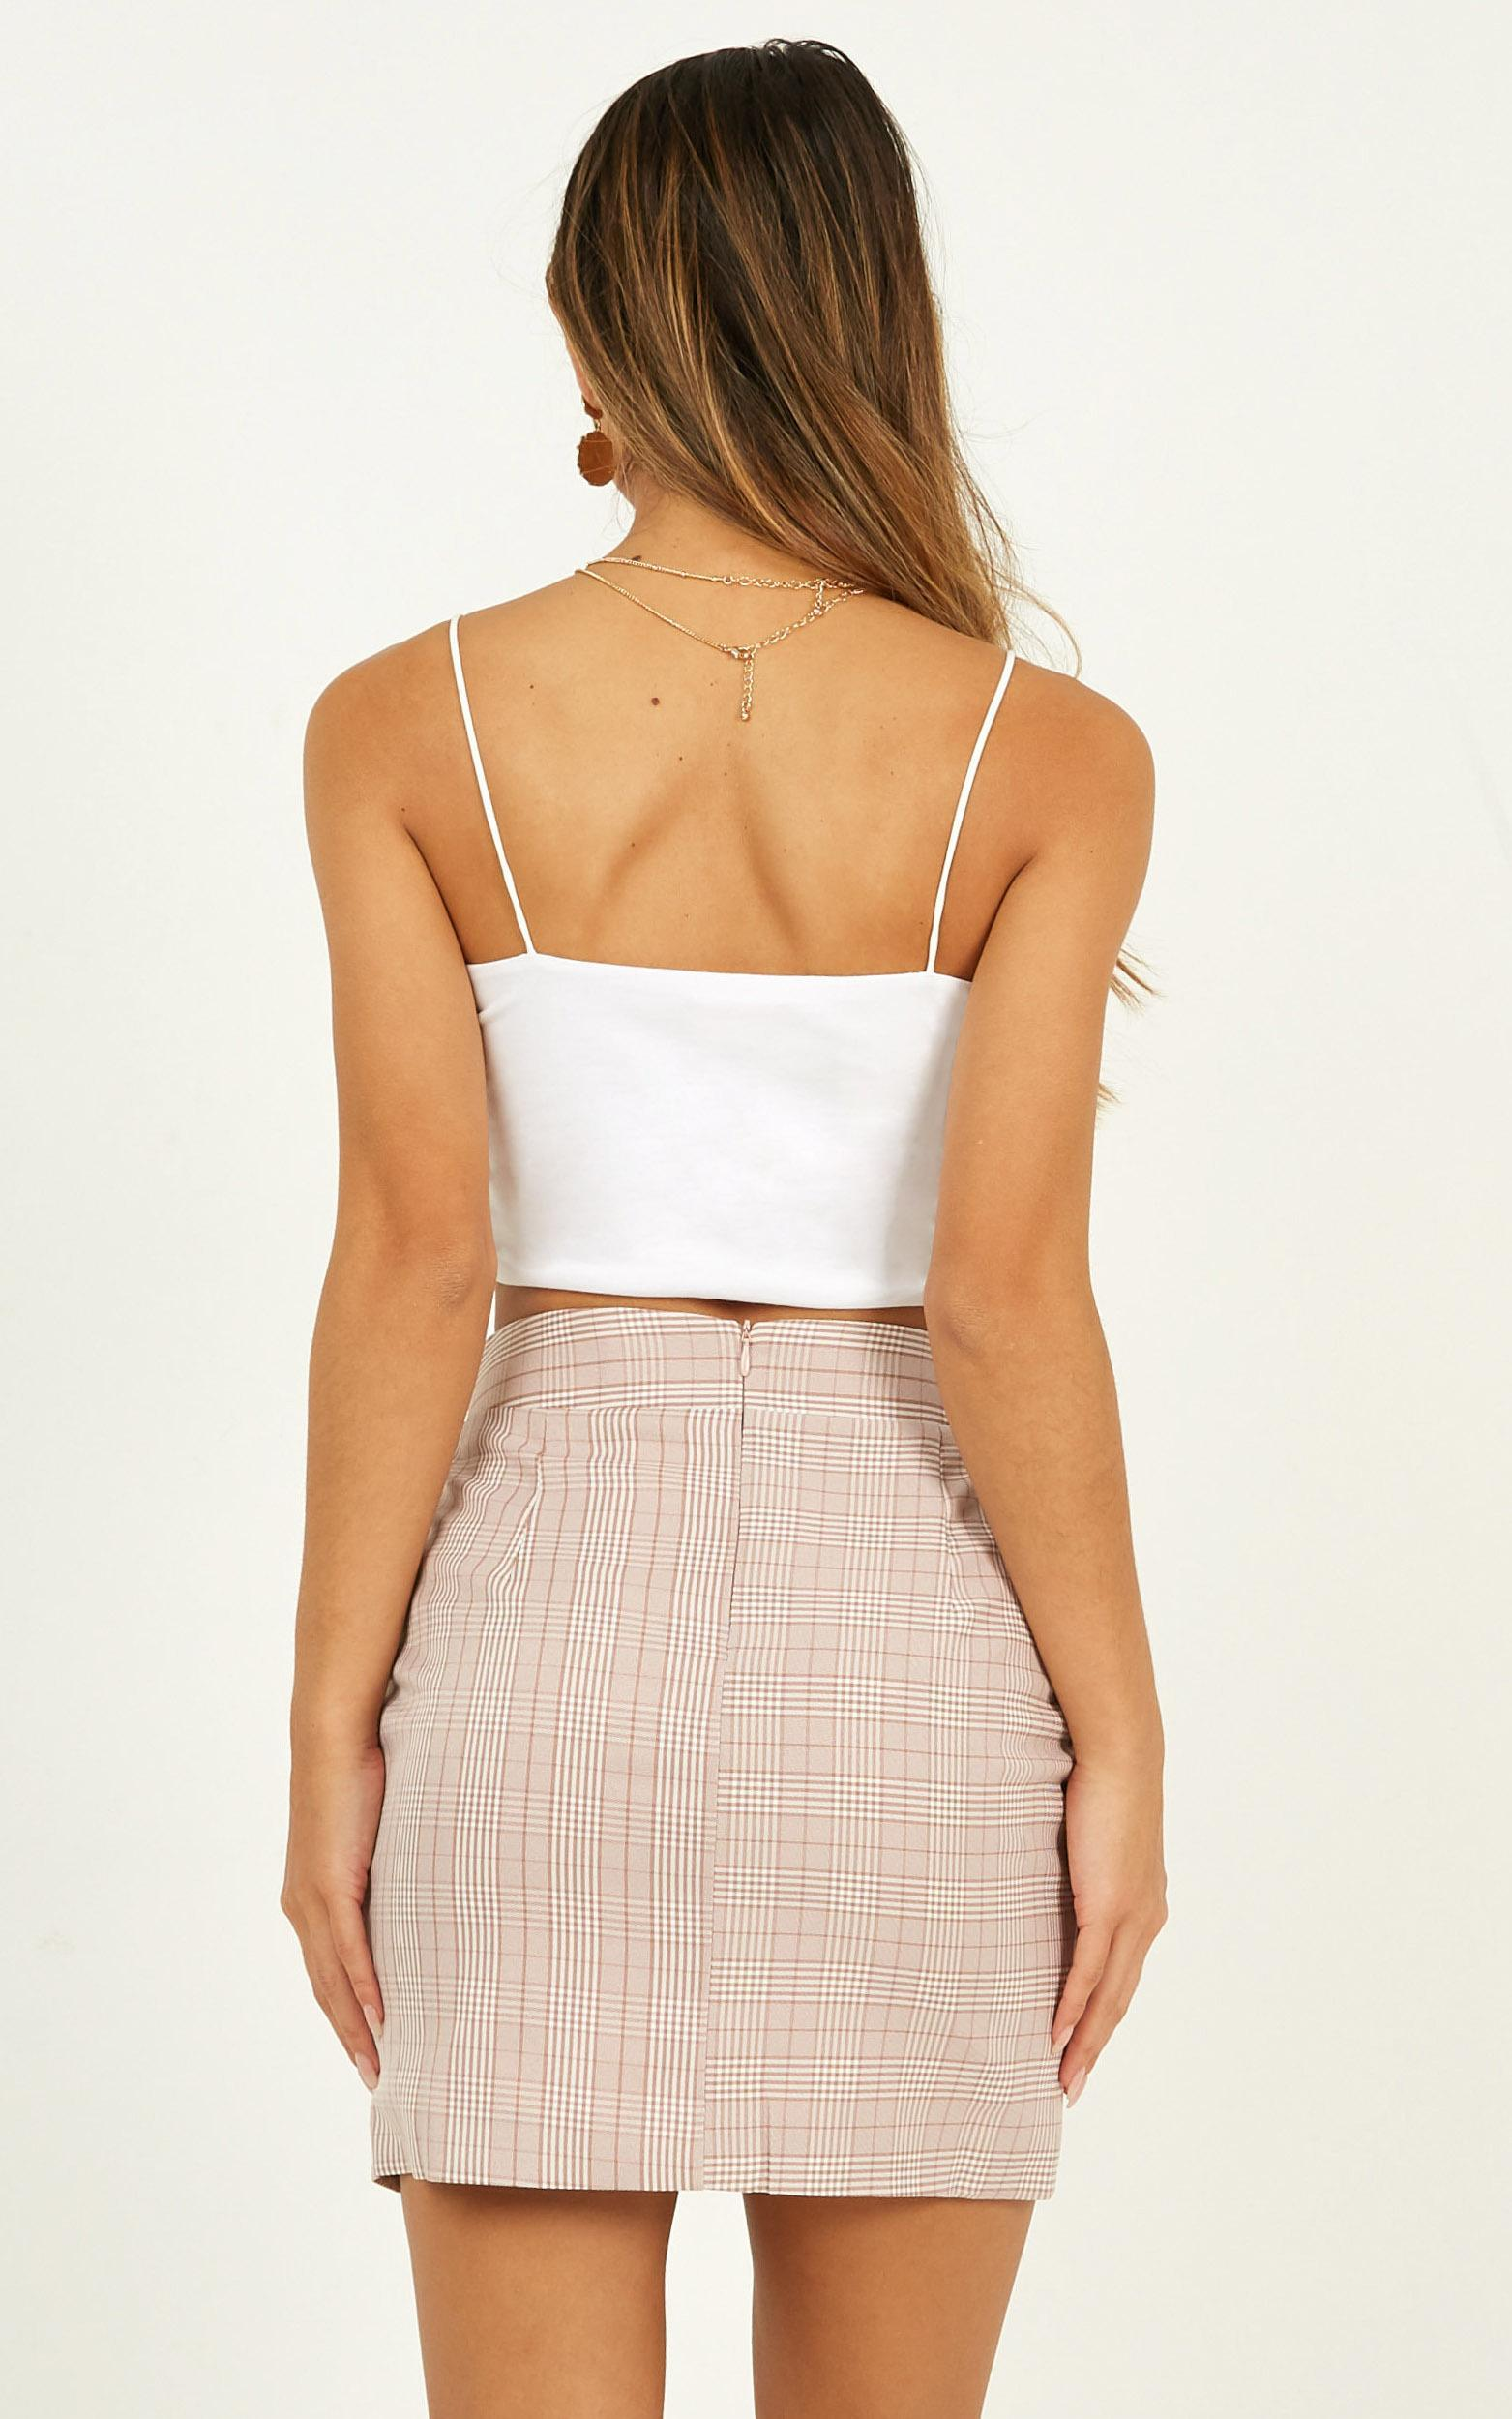 Cancelled Plans Skirt in blush check - 20 (XXXXL), Pink, hi-res image number null